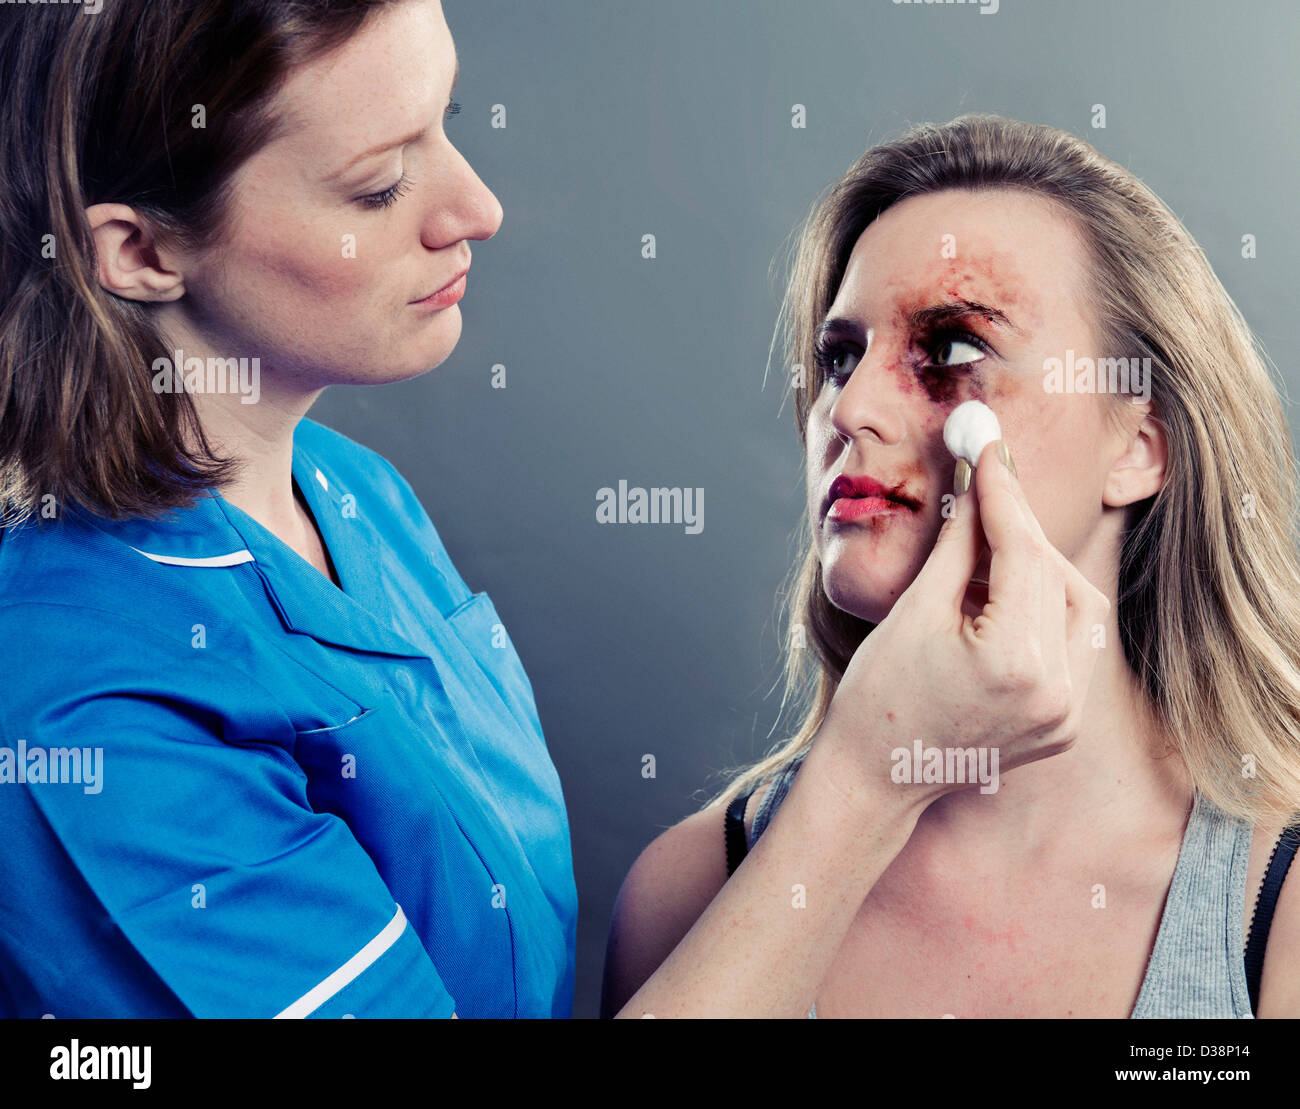 Nurse cleaning womans bruised face - Stock Image